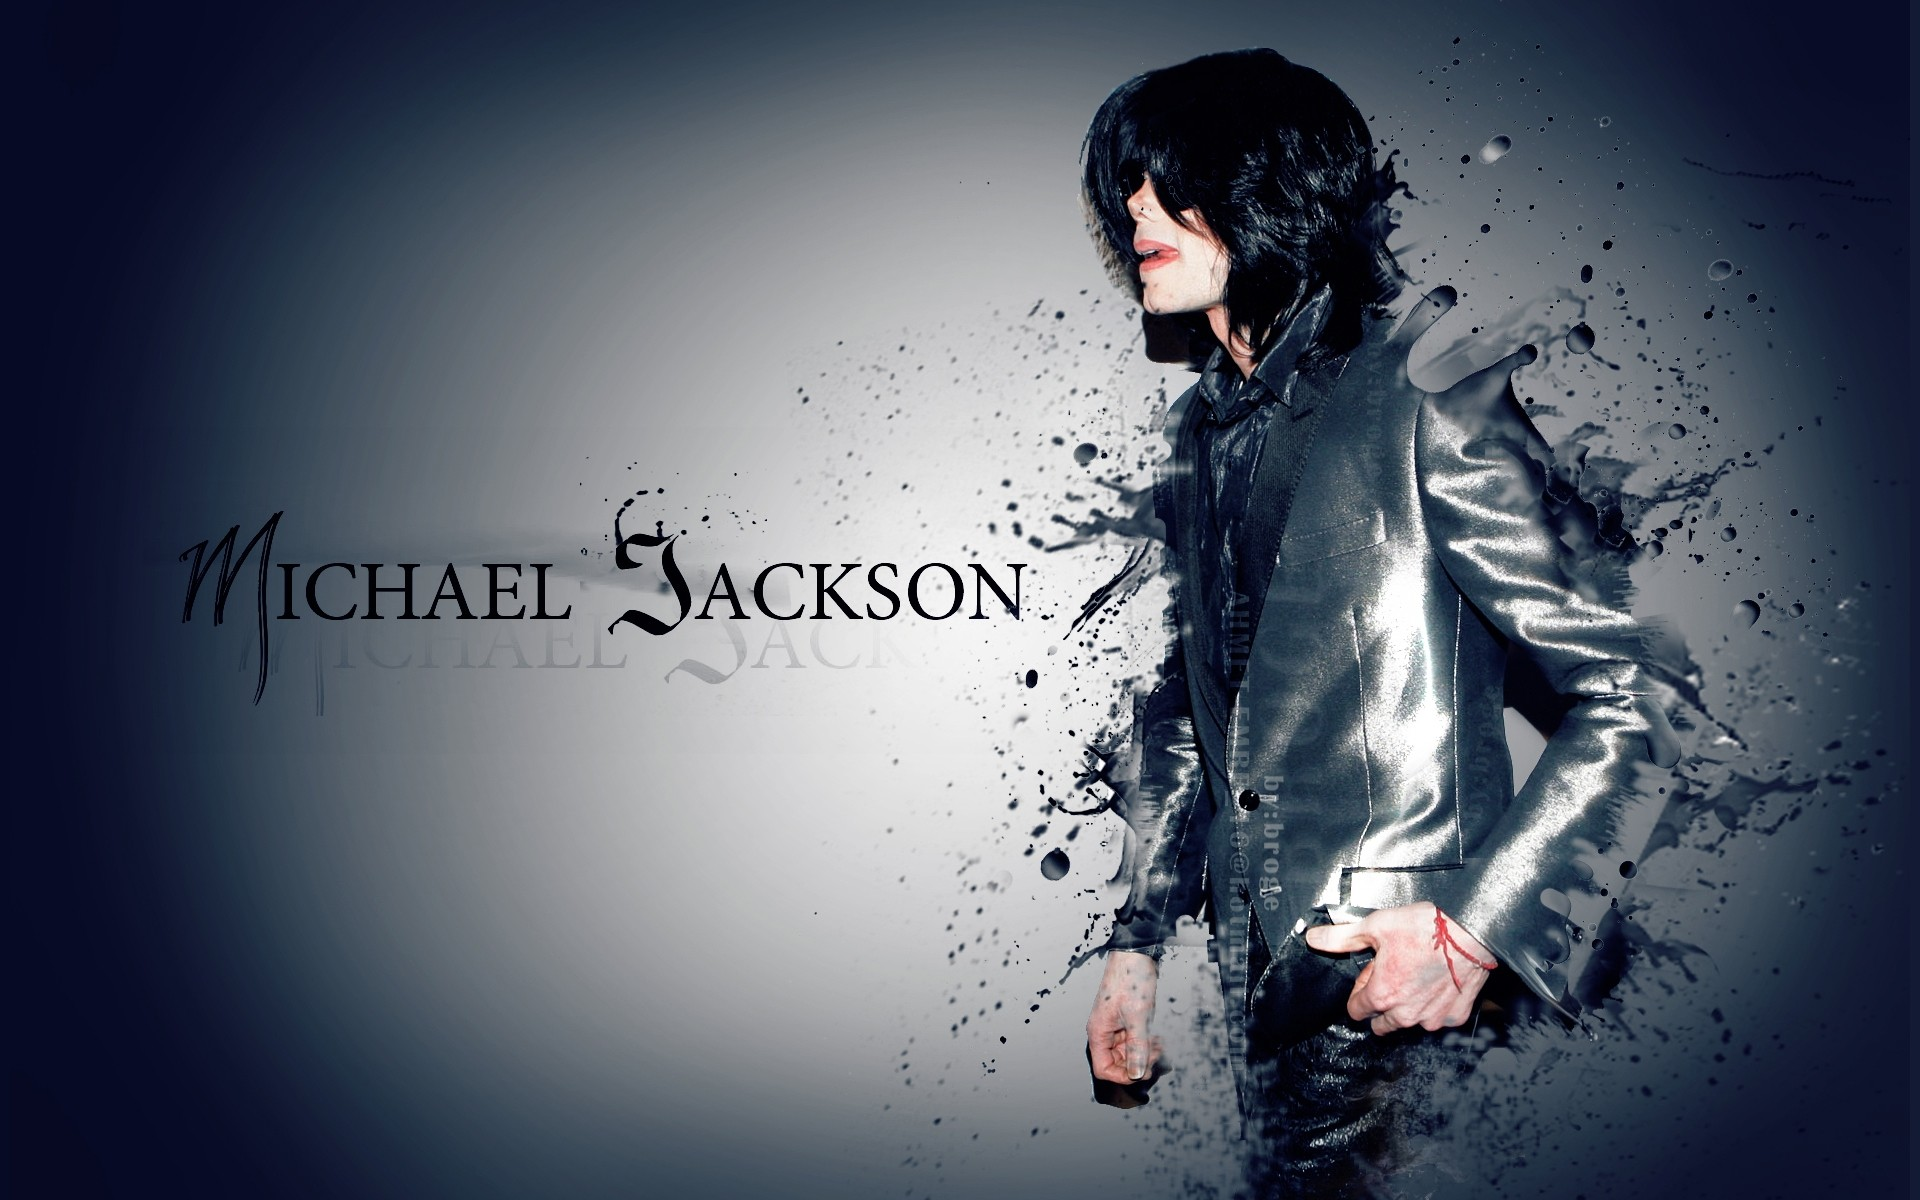 1920x1200 Mobile Phone x Michael jackson Wallpapers HD Desktop | HD Wallpapers |  Pinterest | Michael jackson images, Michael jackson and Hd wallpaper